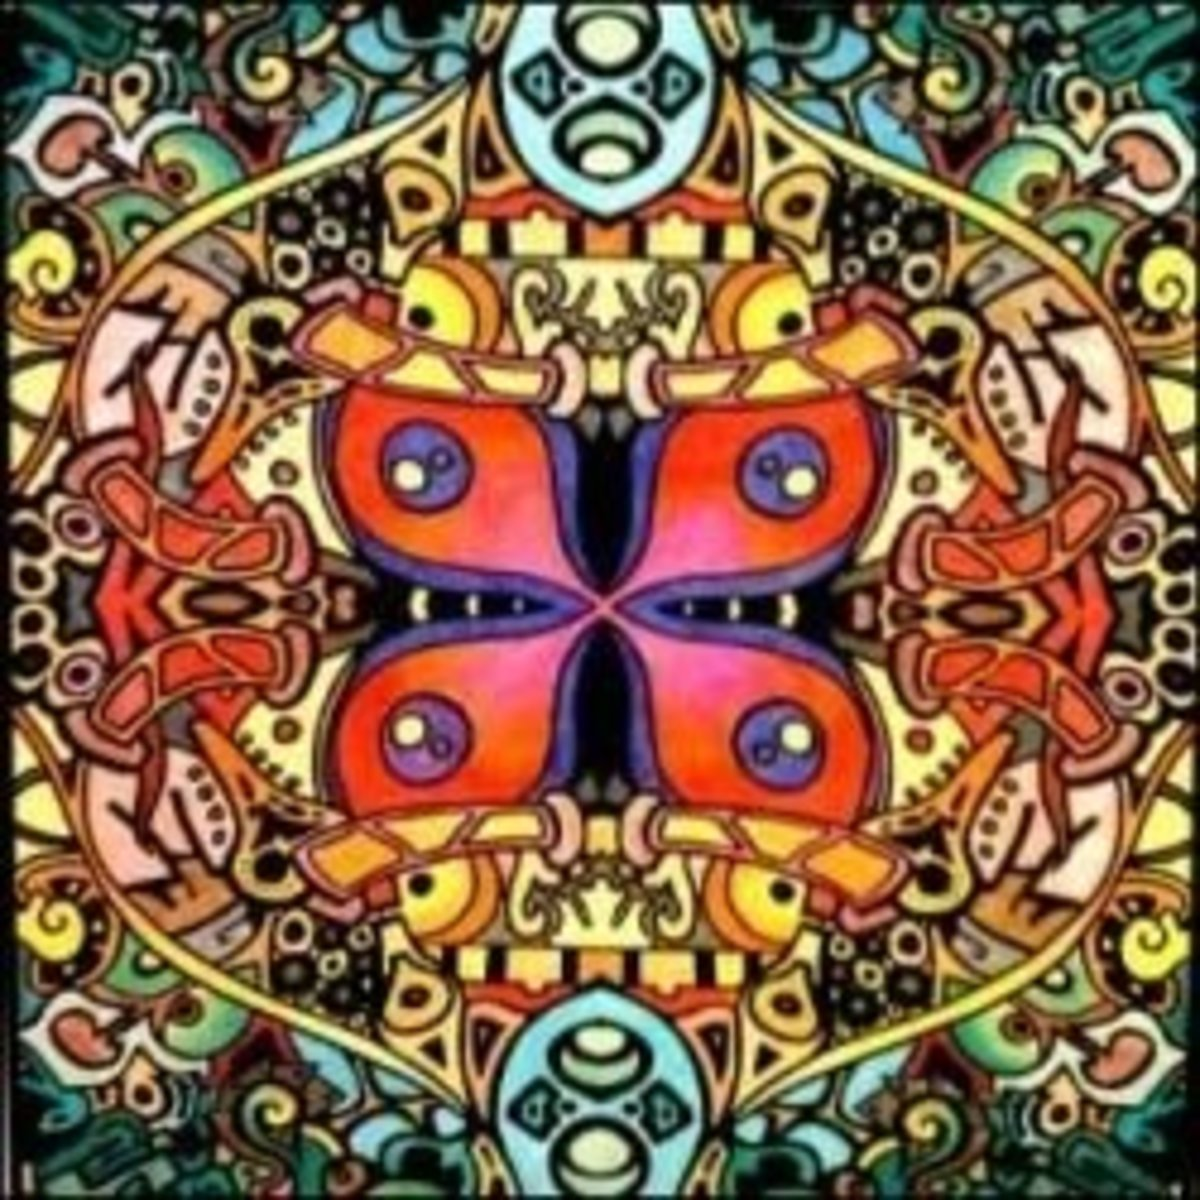 Photo: Kaleidoscope - Giant 22 X 32.5 Inch Line Art Poster by Stuff2Color (see how to buy info below).